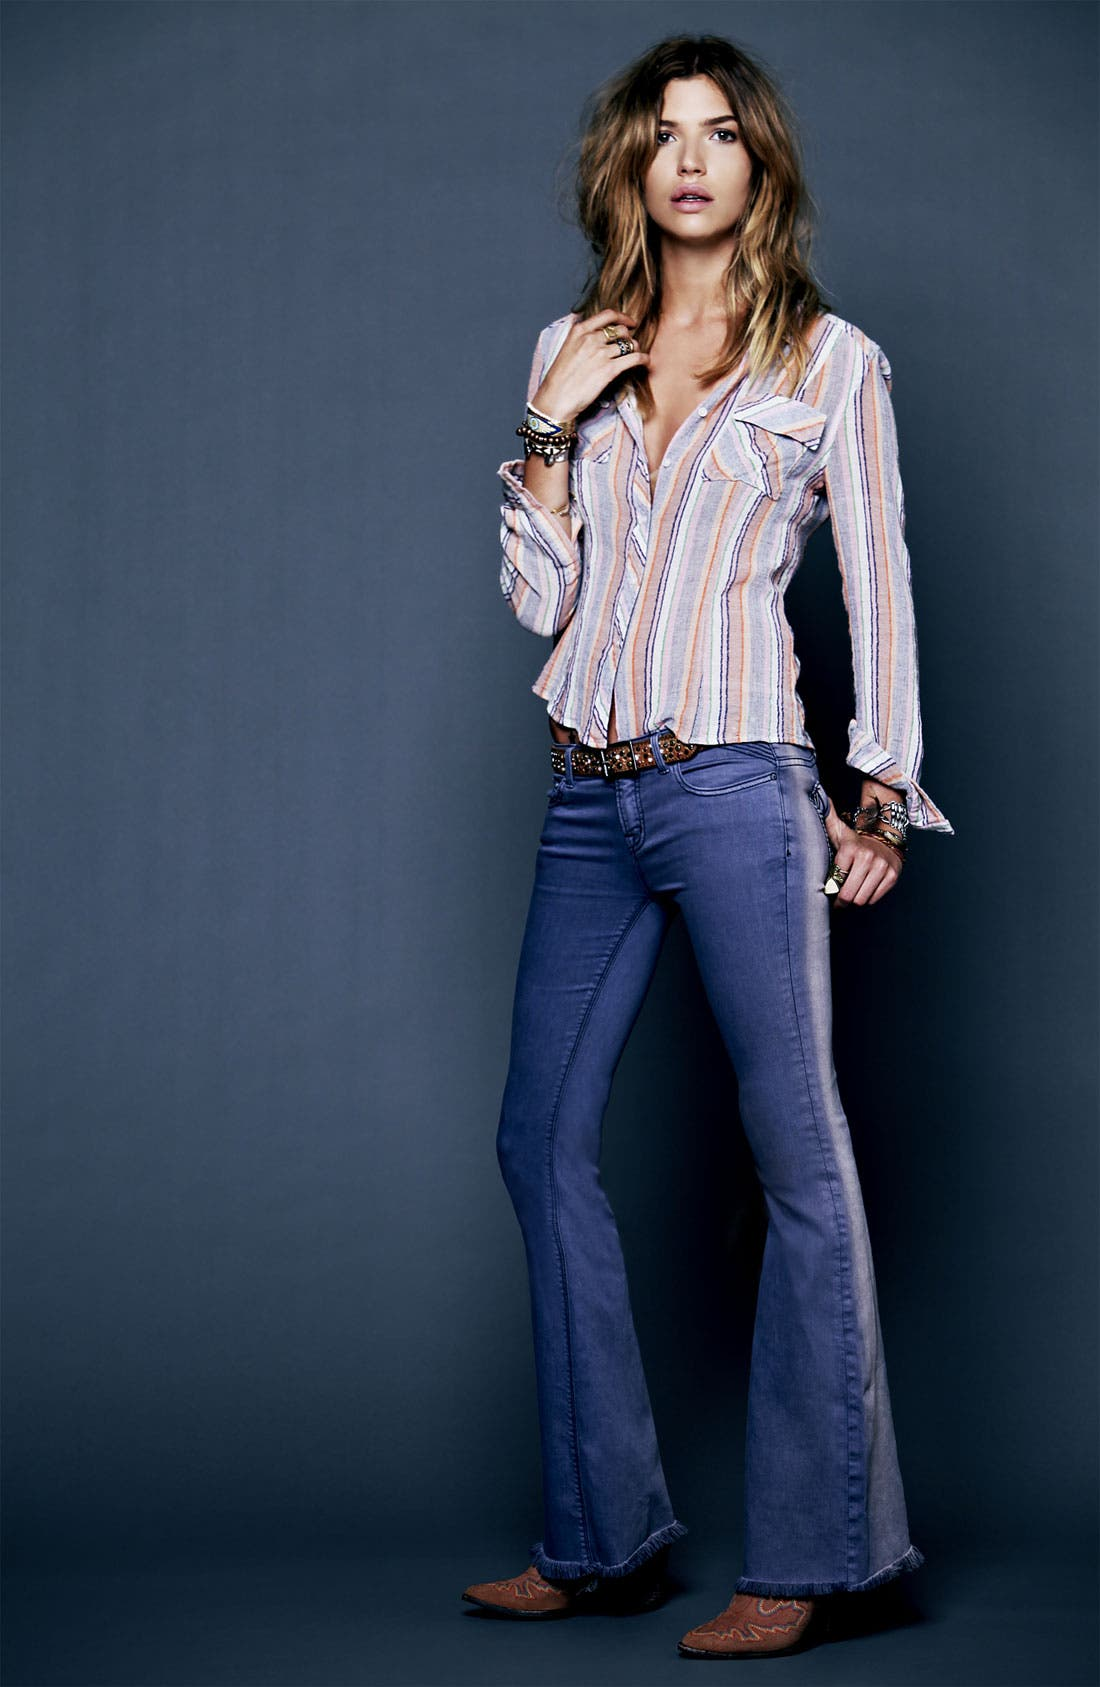 Alternate Image 1 Selected - Free People Shirt & Jeans